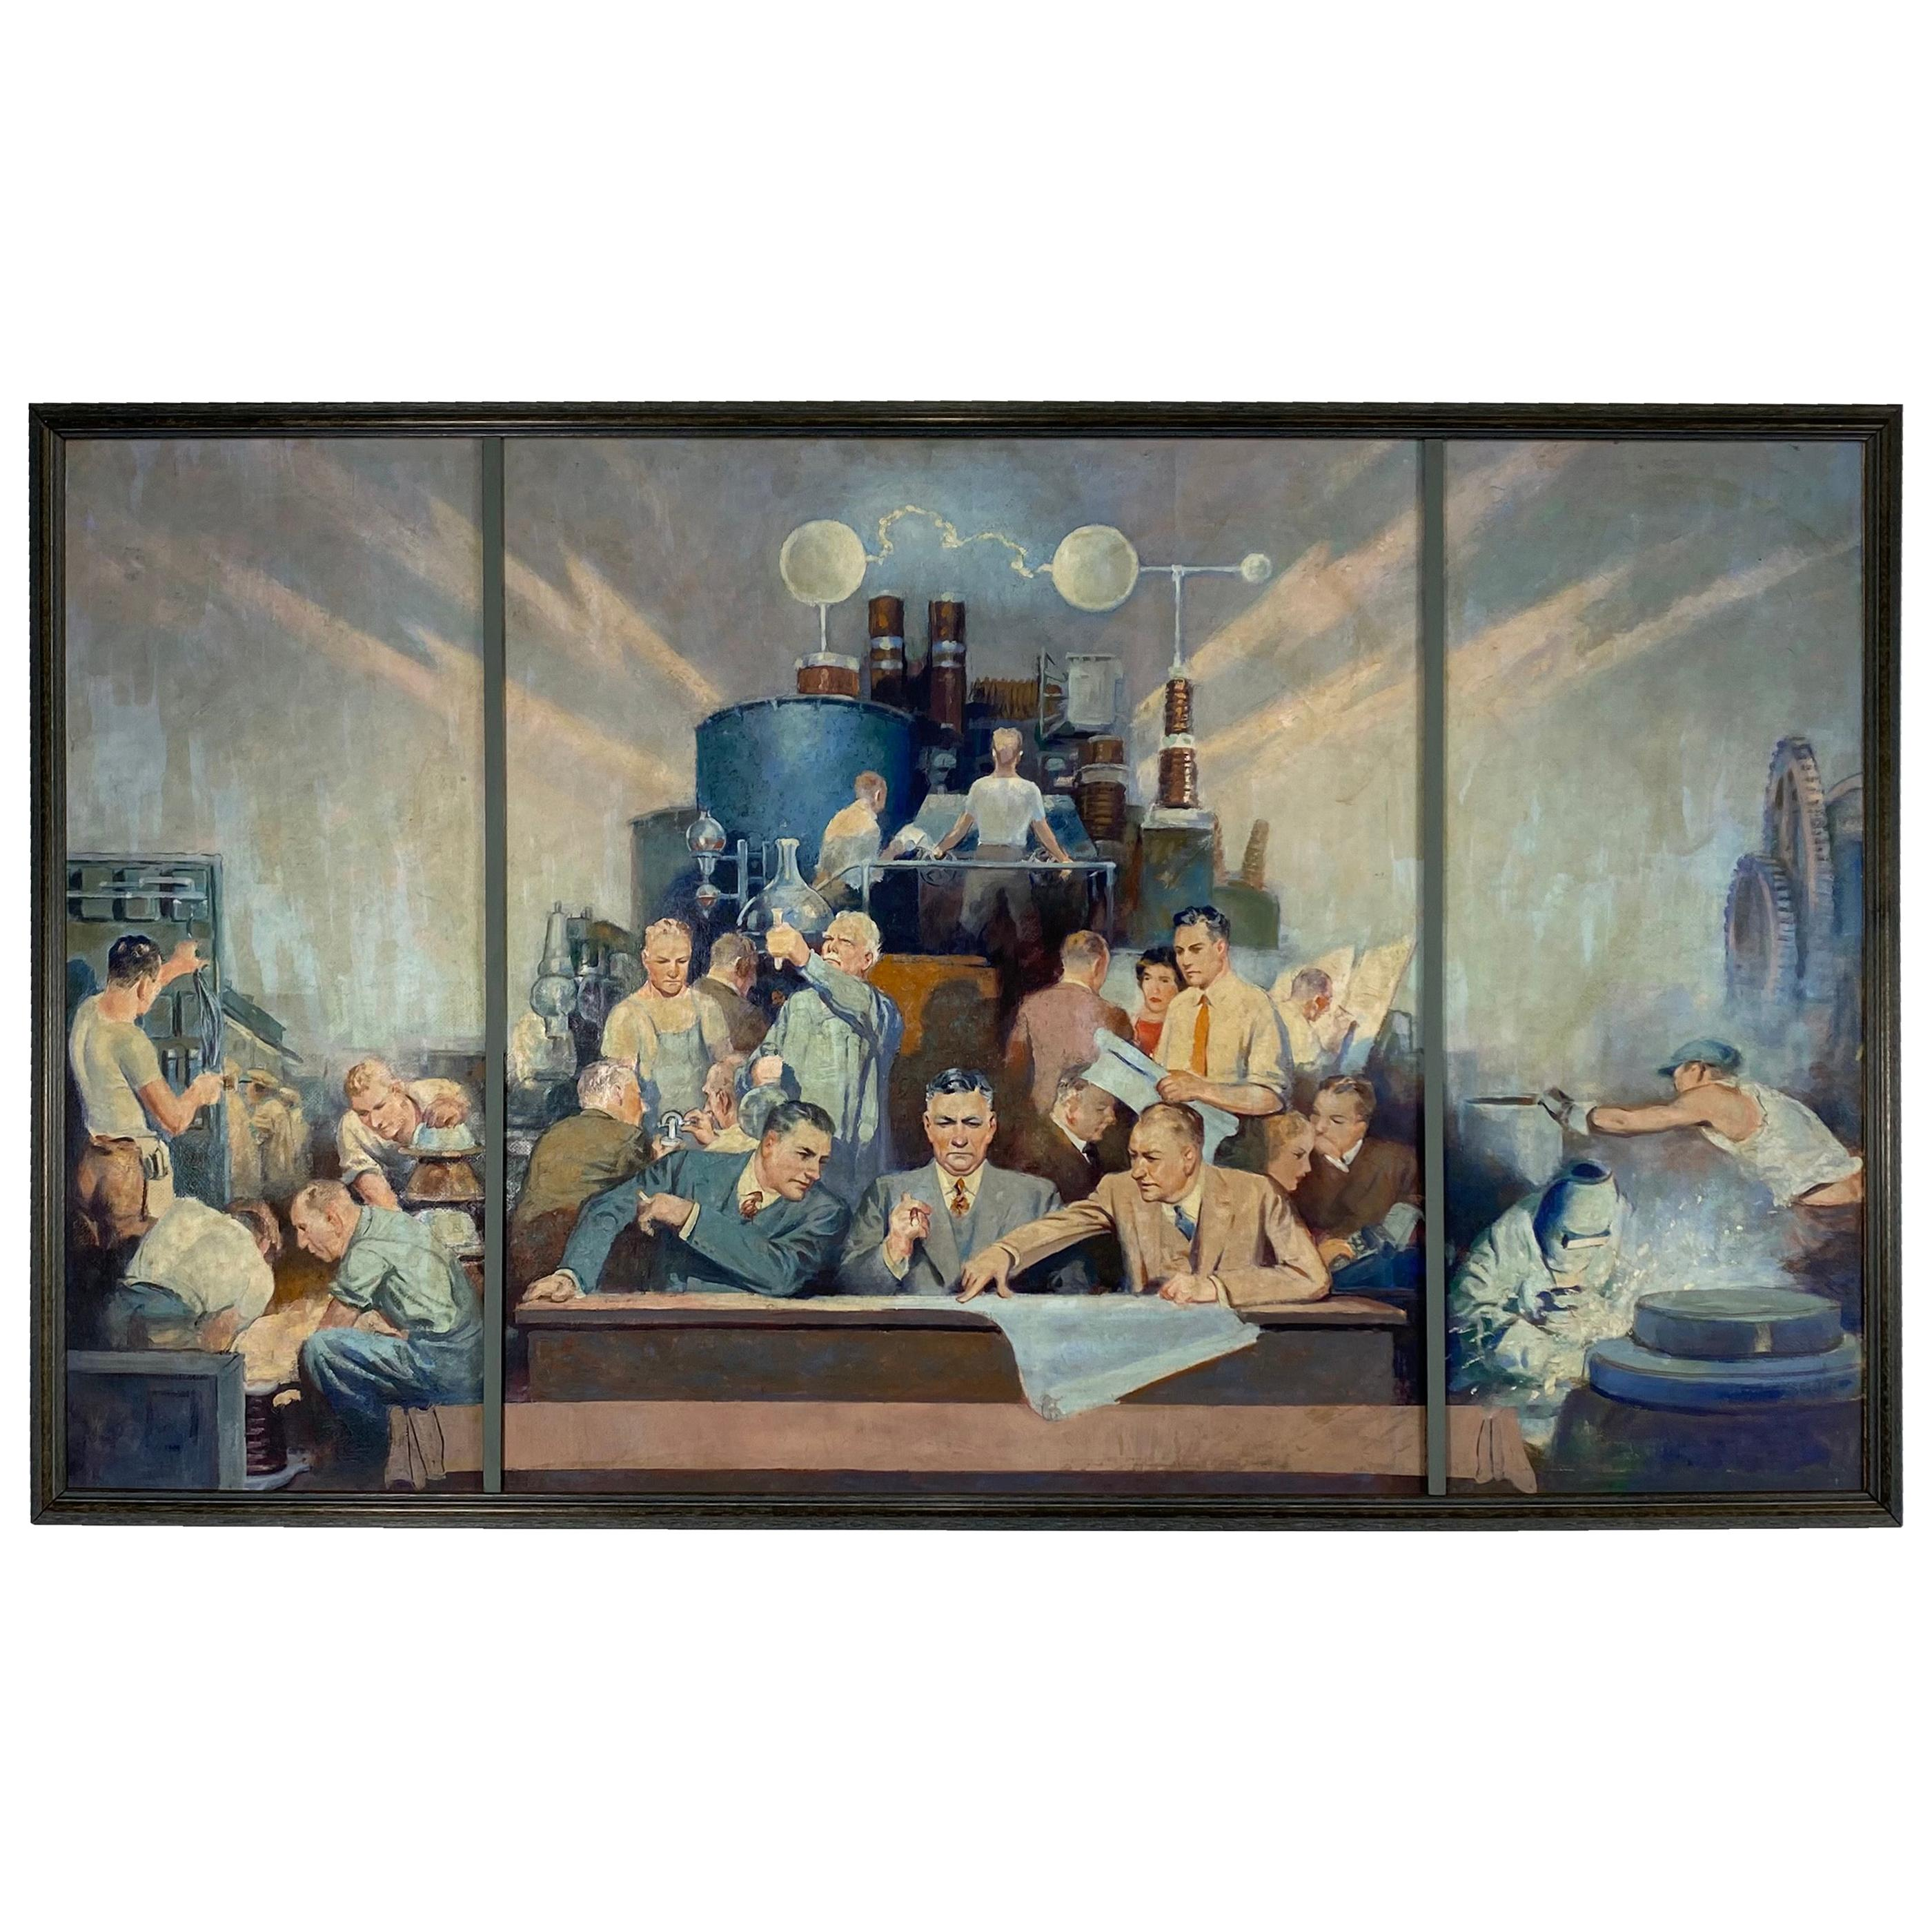 W.P.A. Style Painting, Science, Politics Industry 1940s-1950s, Oil on Board